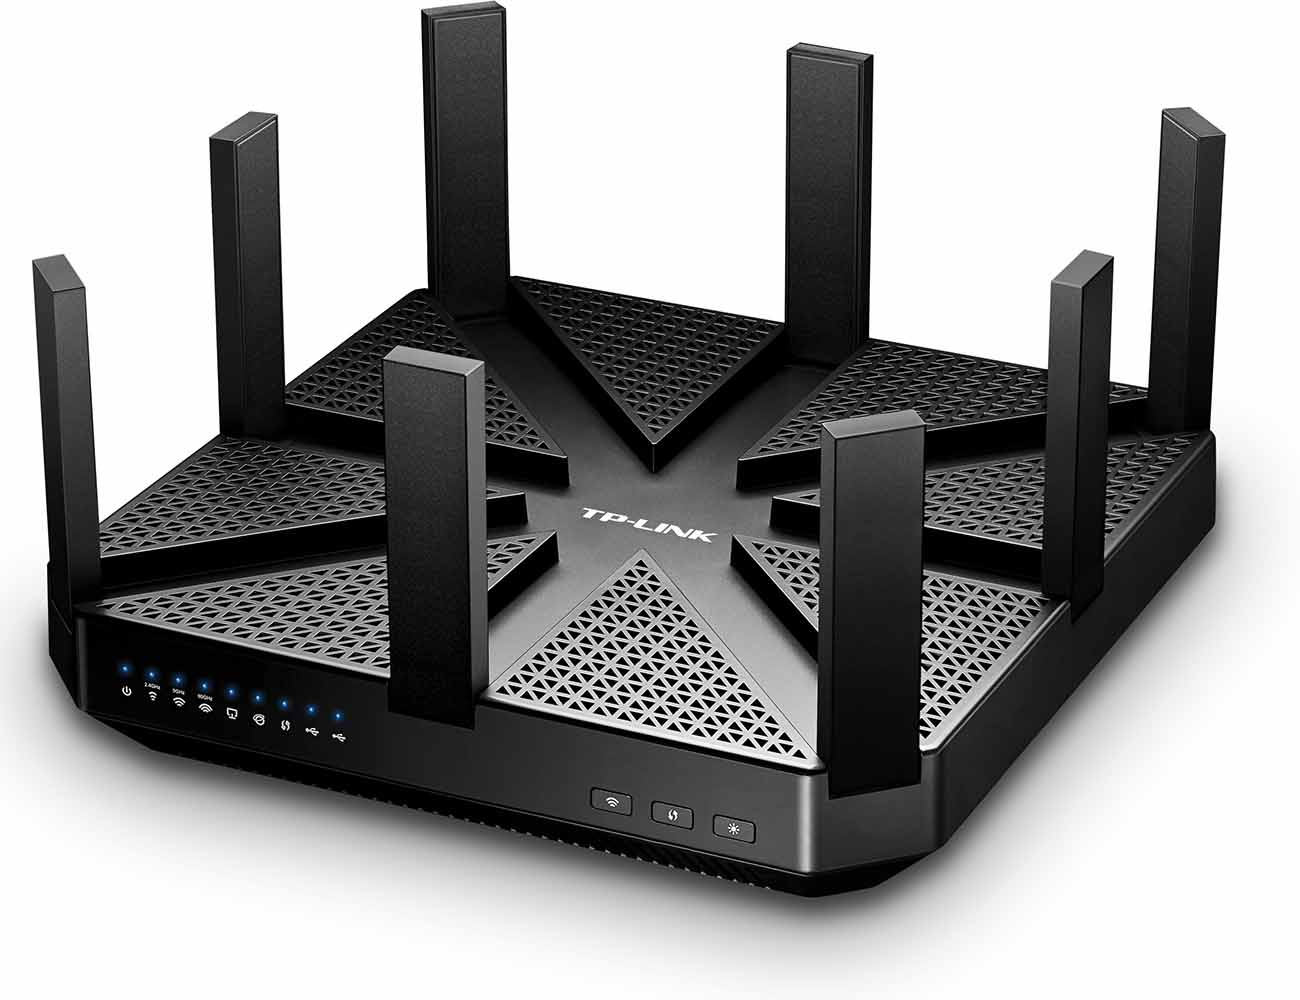 TP-Link Talon AD7200 – The World's First 802.11ad Router